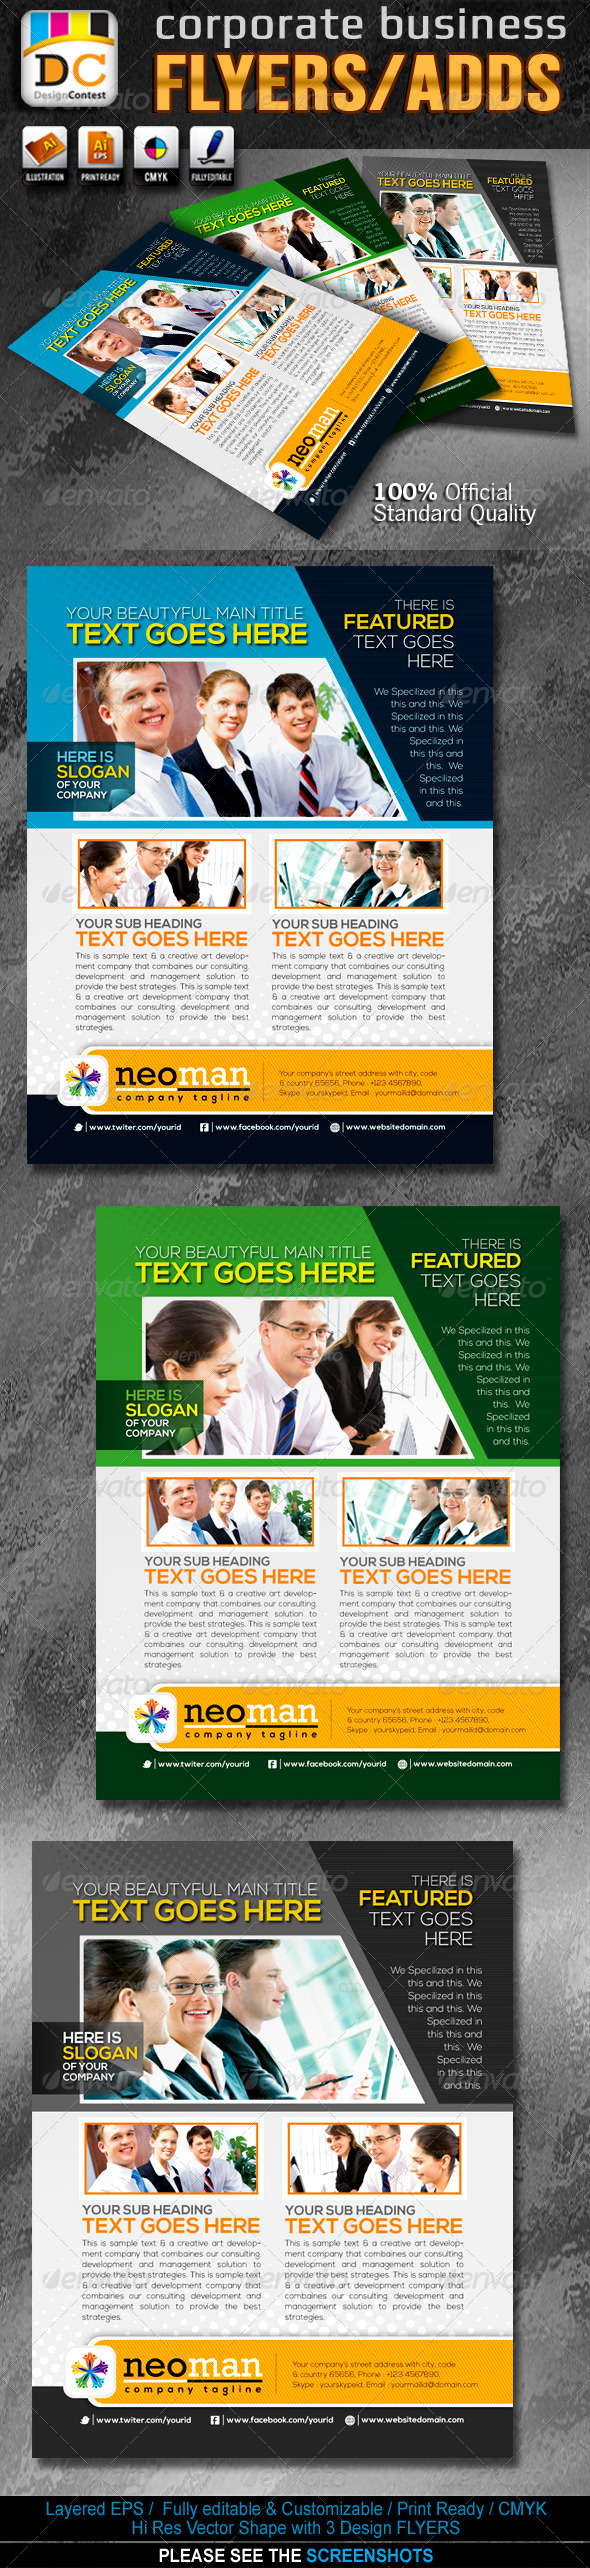 Neo Man Corporate Business Flyers/Adds - Corporate Flyers